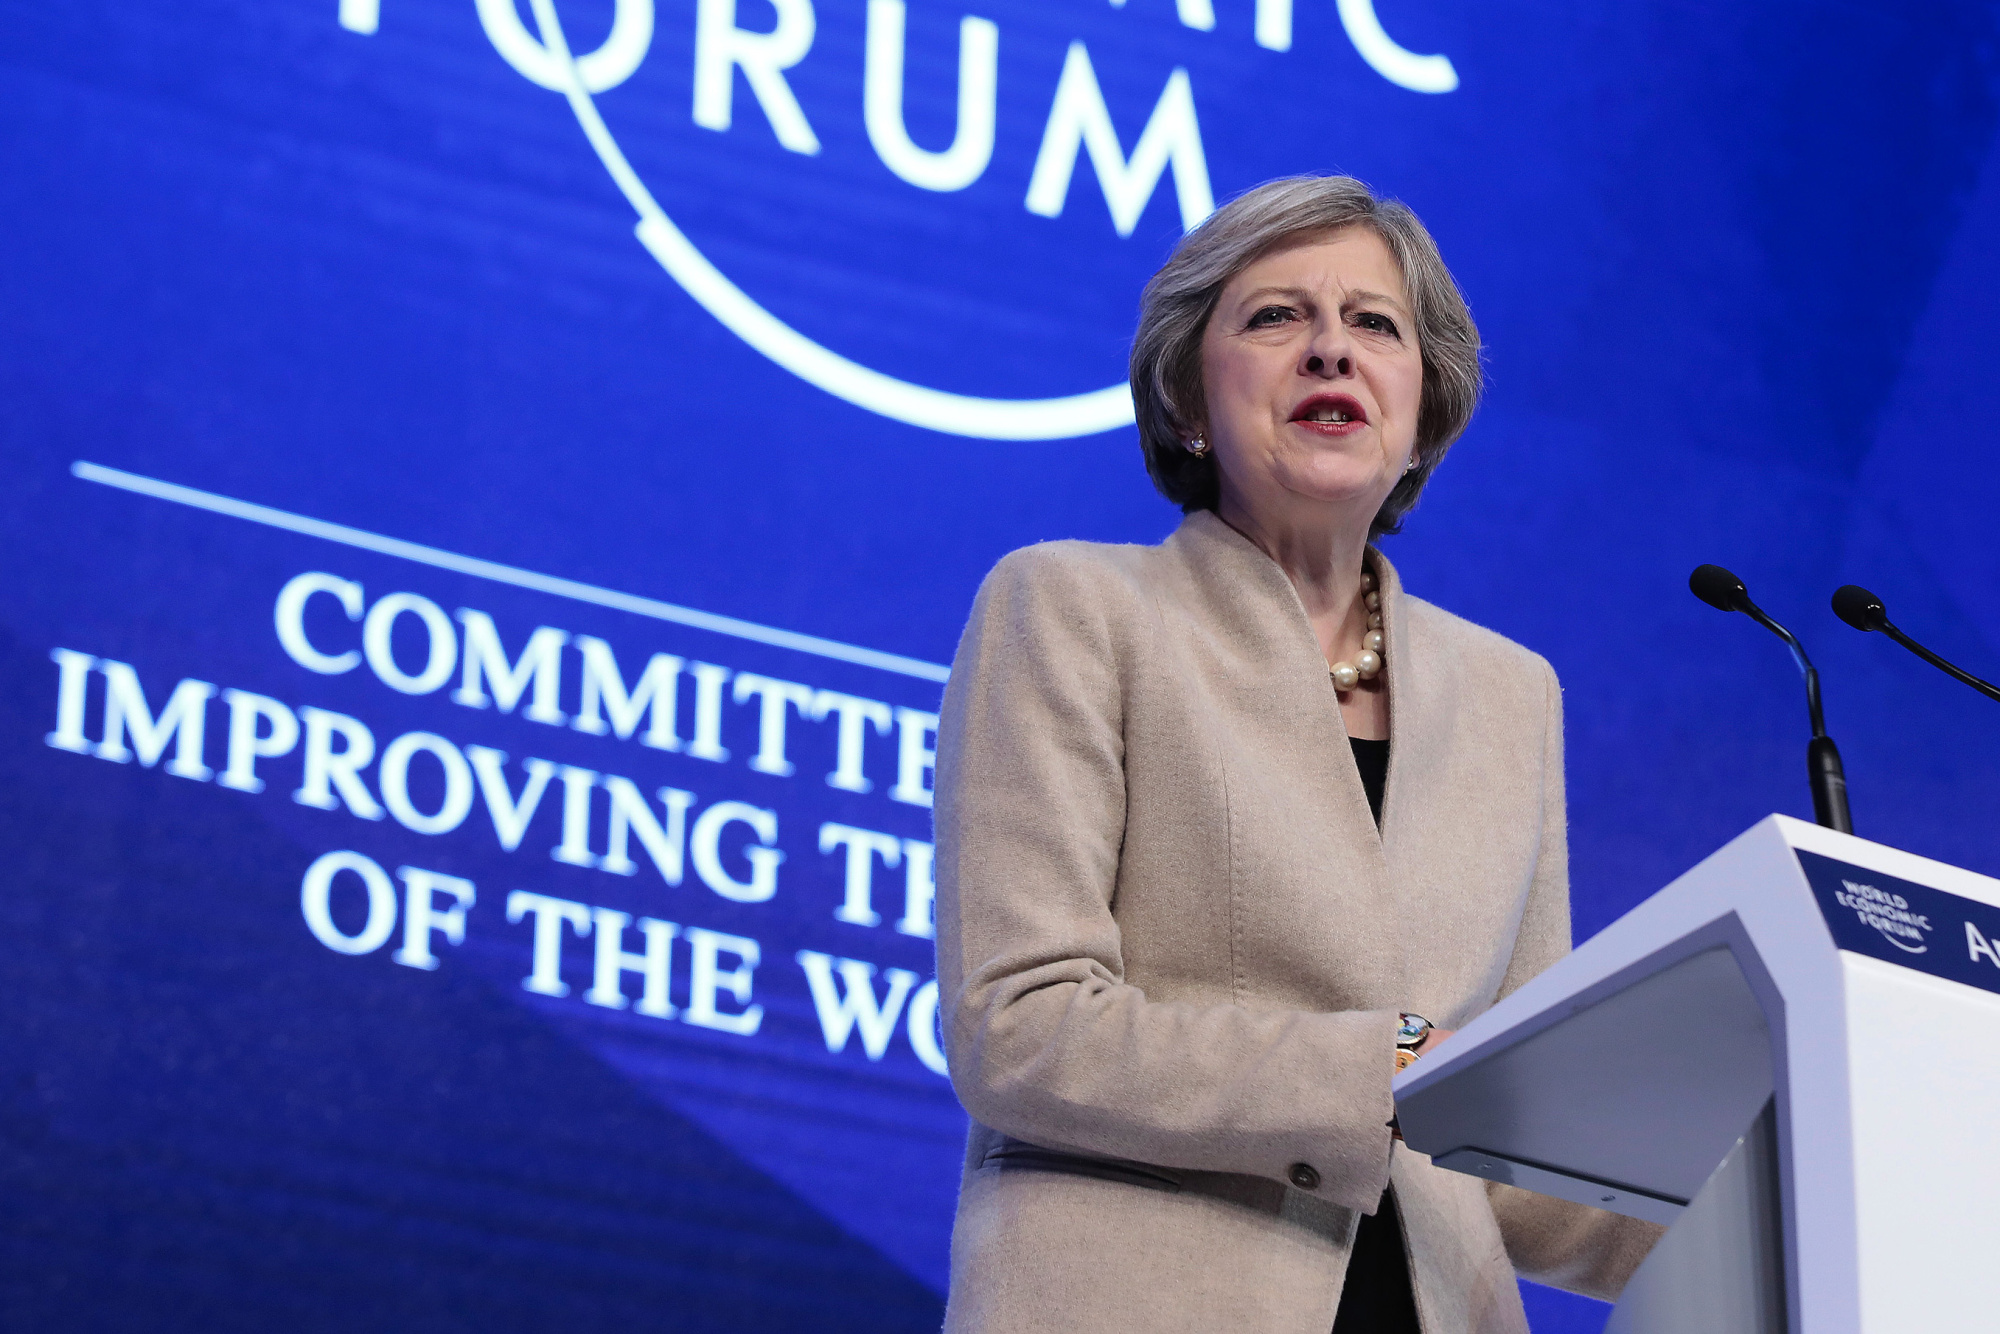 Wall Street Meets May in Davos as Banks Plan Own Brexit